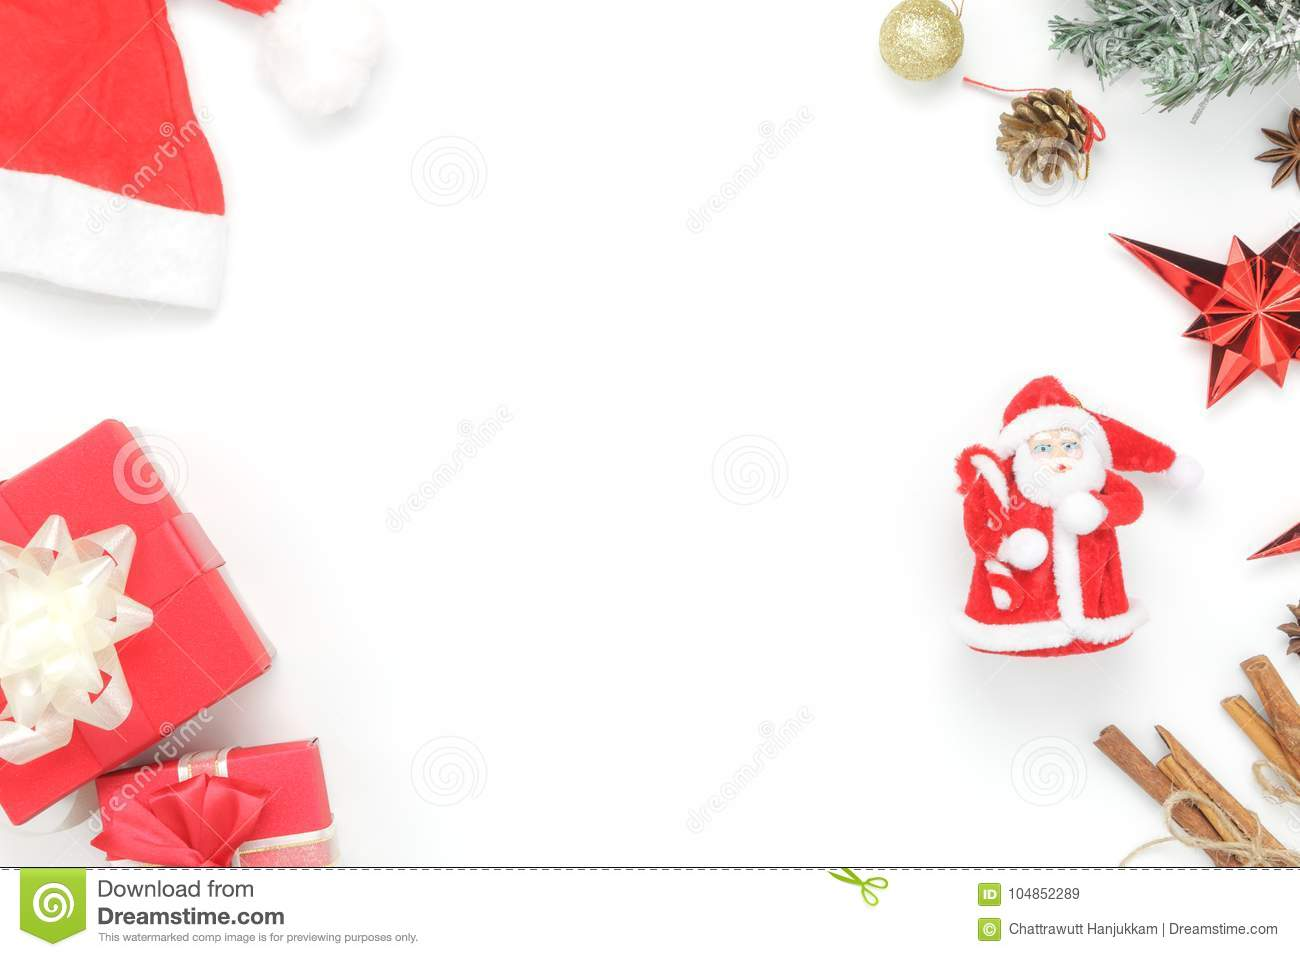 above view aerial image of ornaments decorations merry christmas happy new year concept - Essential Christmas Decorations